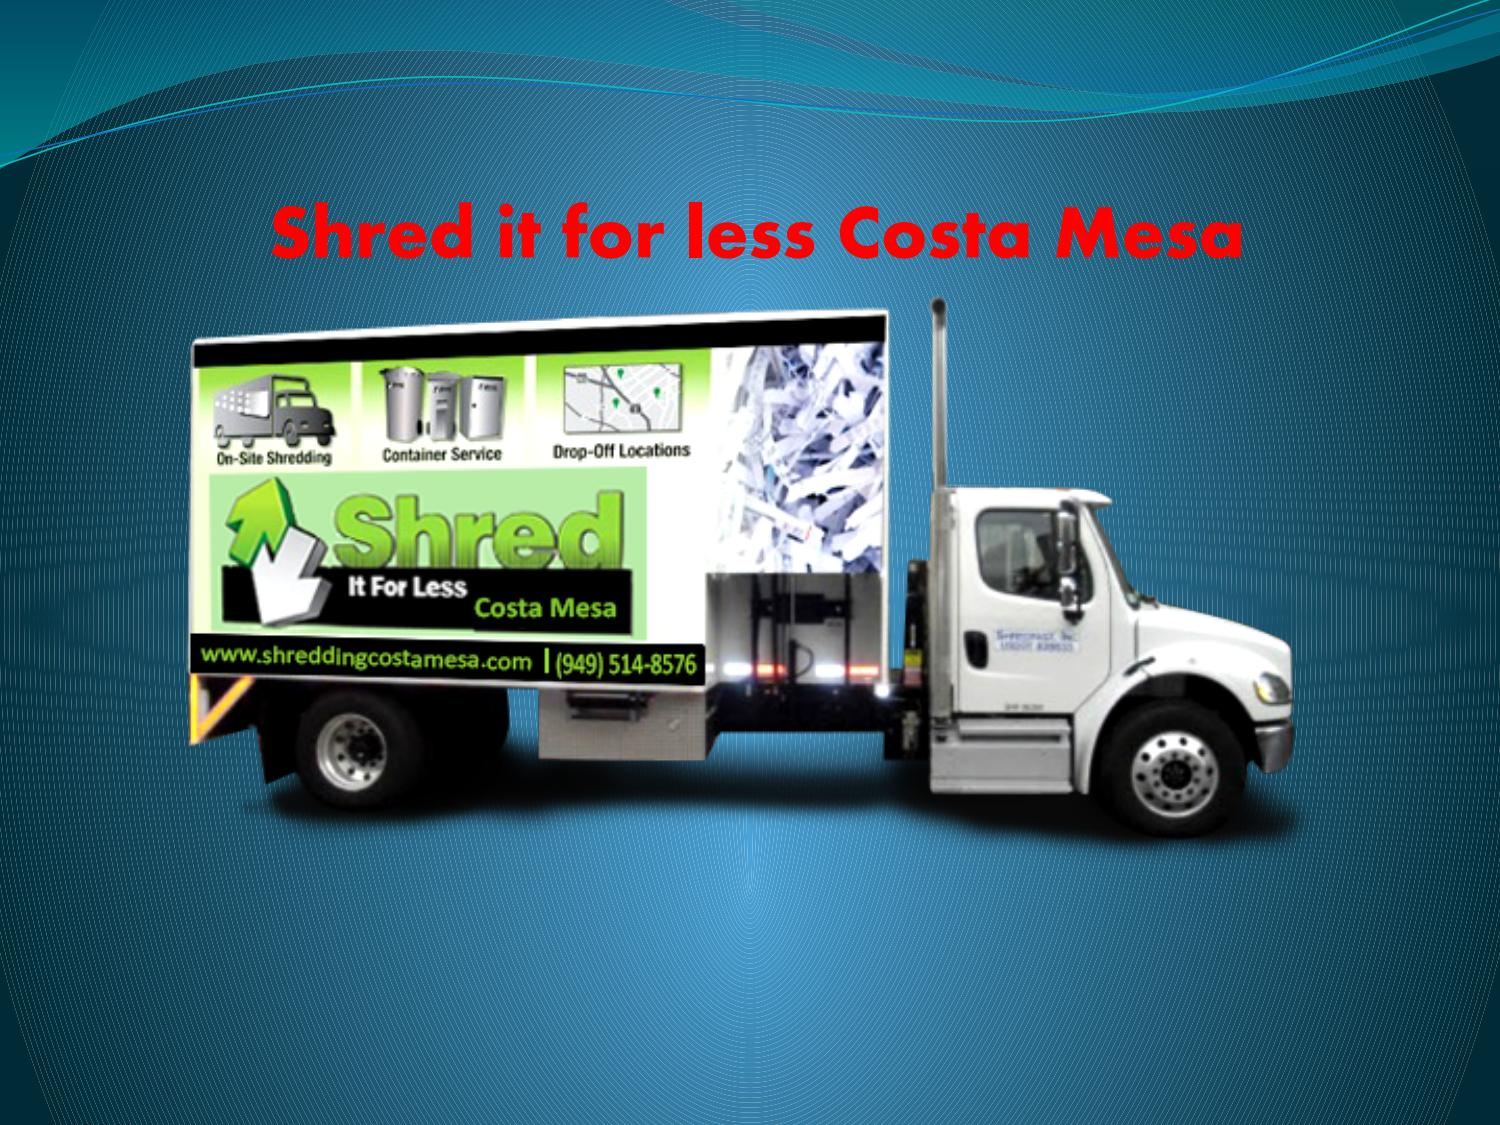 Document Destruction Company- Shred it for less Irvine by Anet